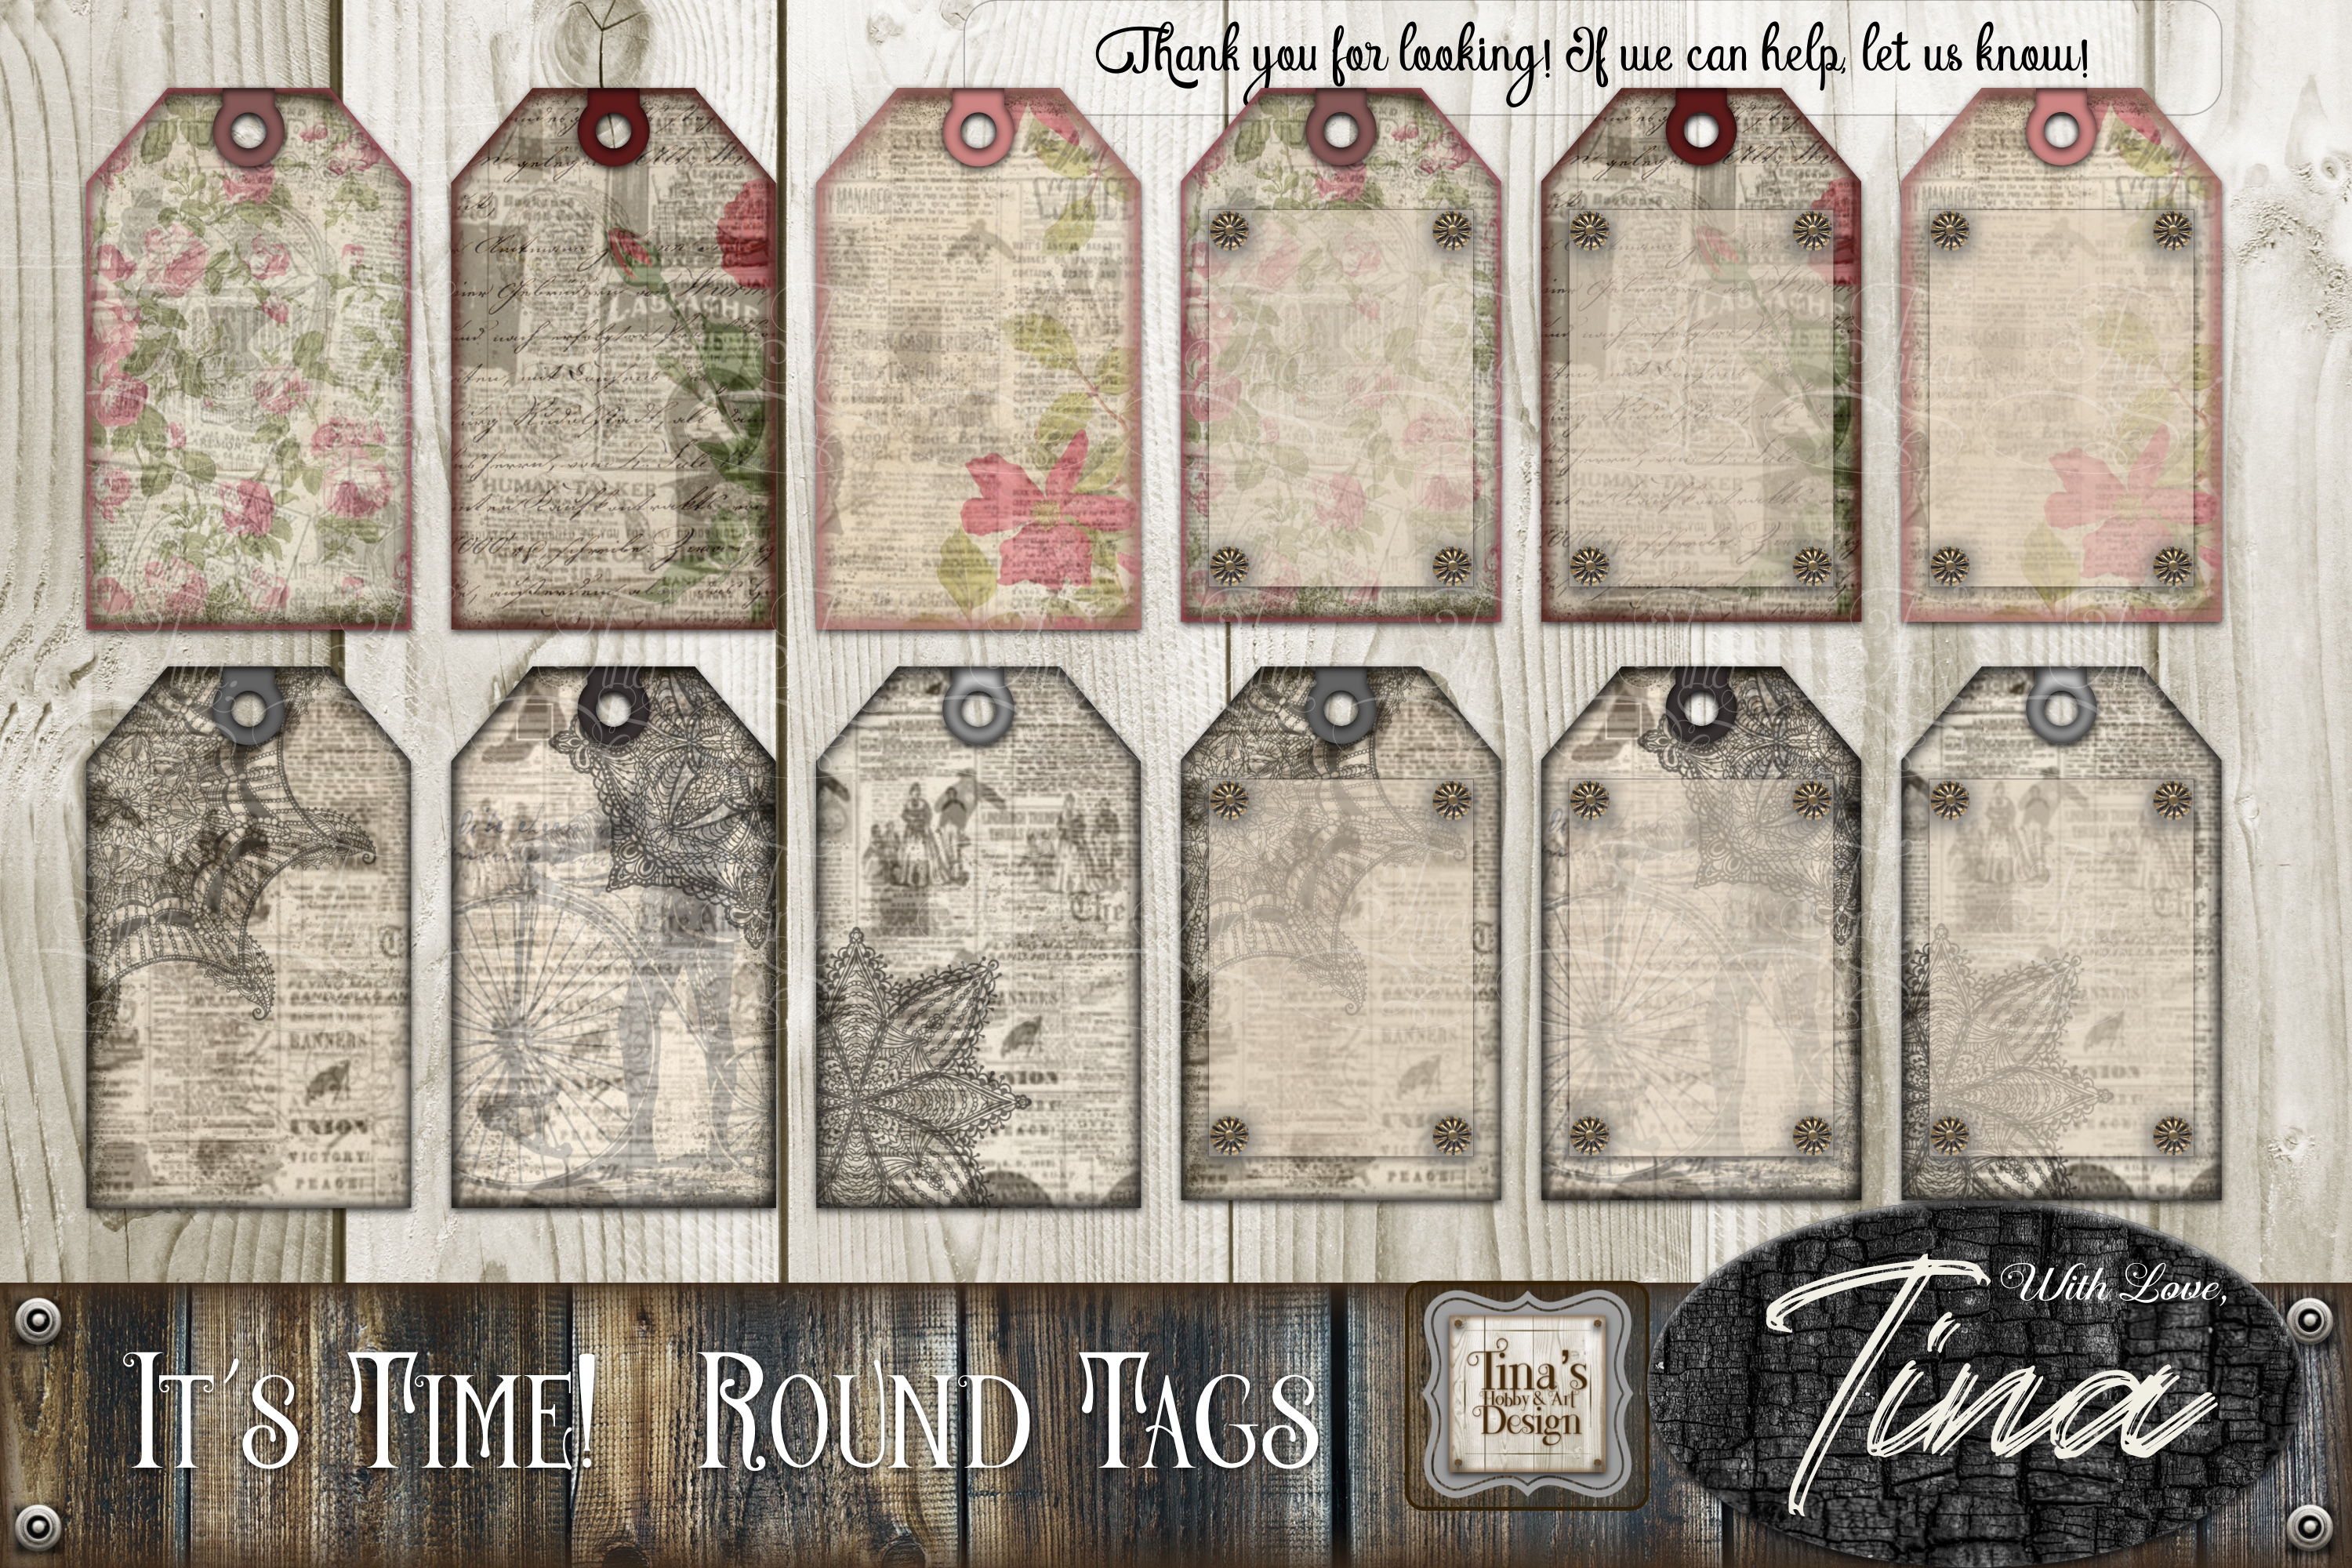 It's Time Newsprint Roses Lace Doily and Tags 092818INP example image 2